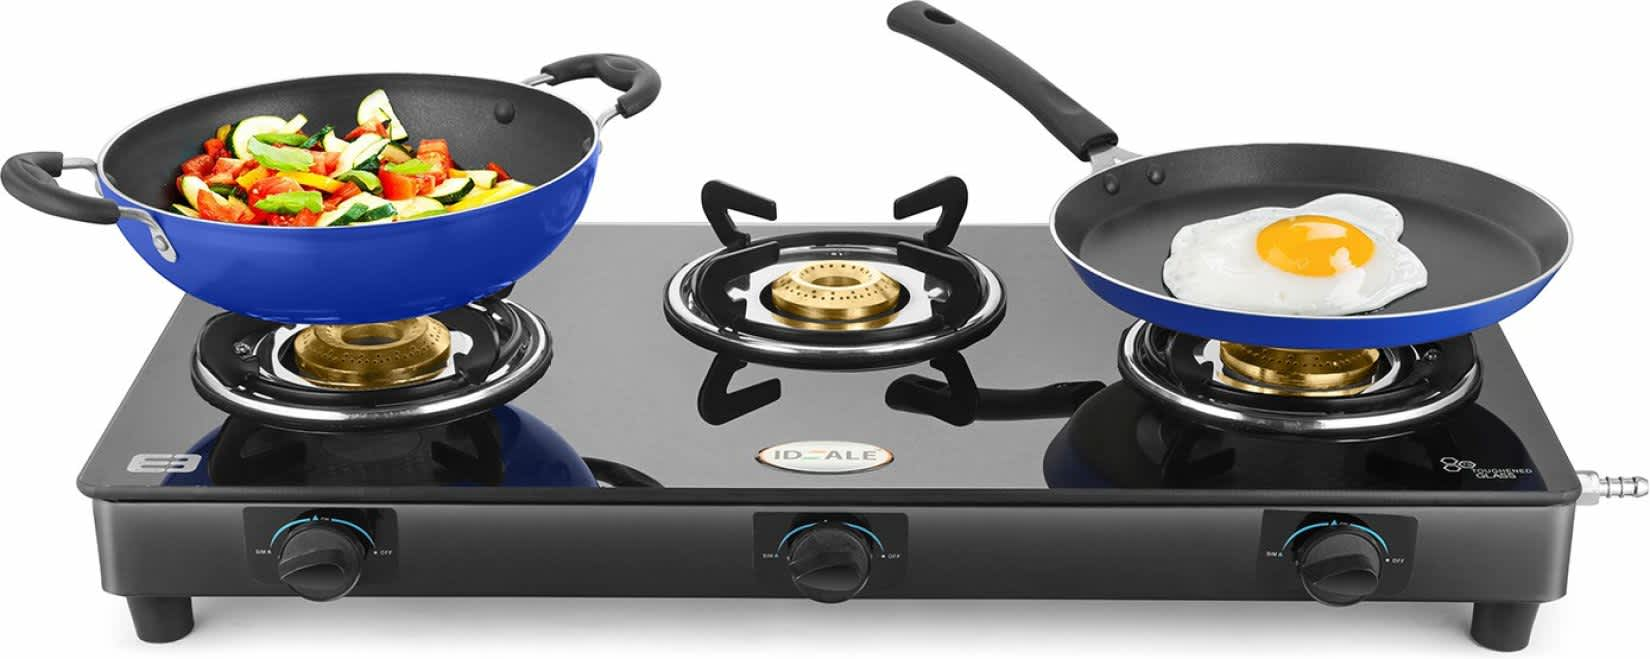 !!!75% off!!!Ideale Triox-KT Steel Manual Gas Stove (3 Burners)